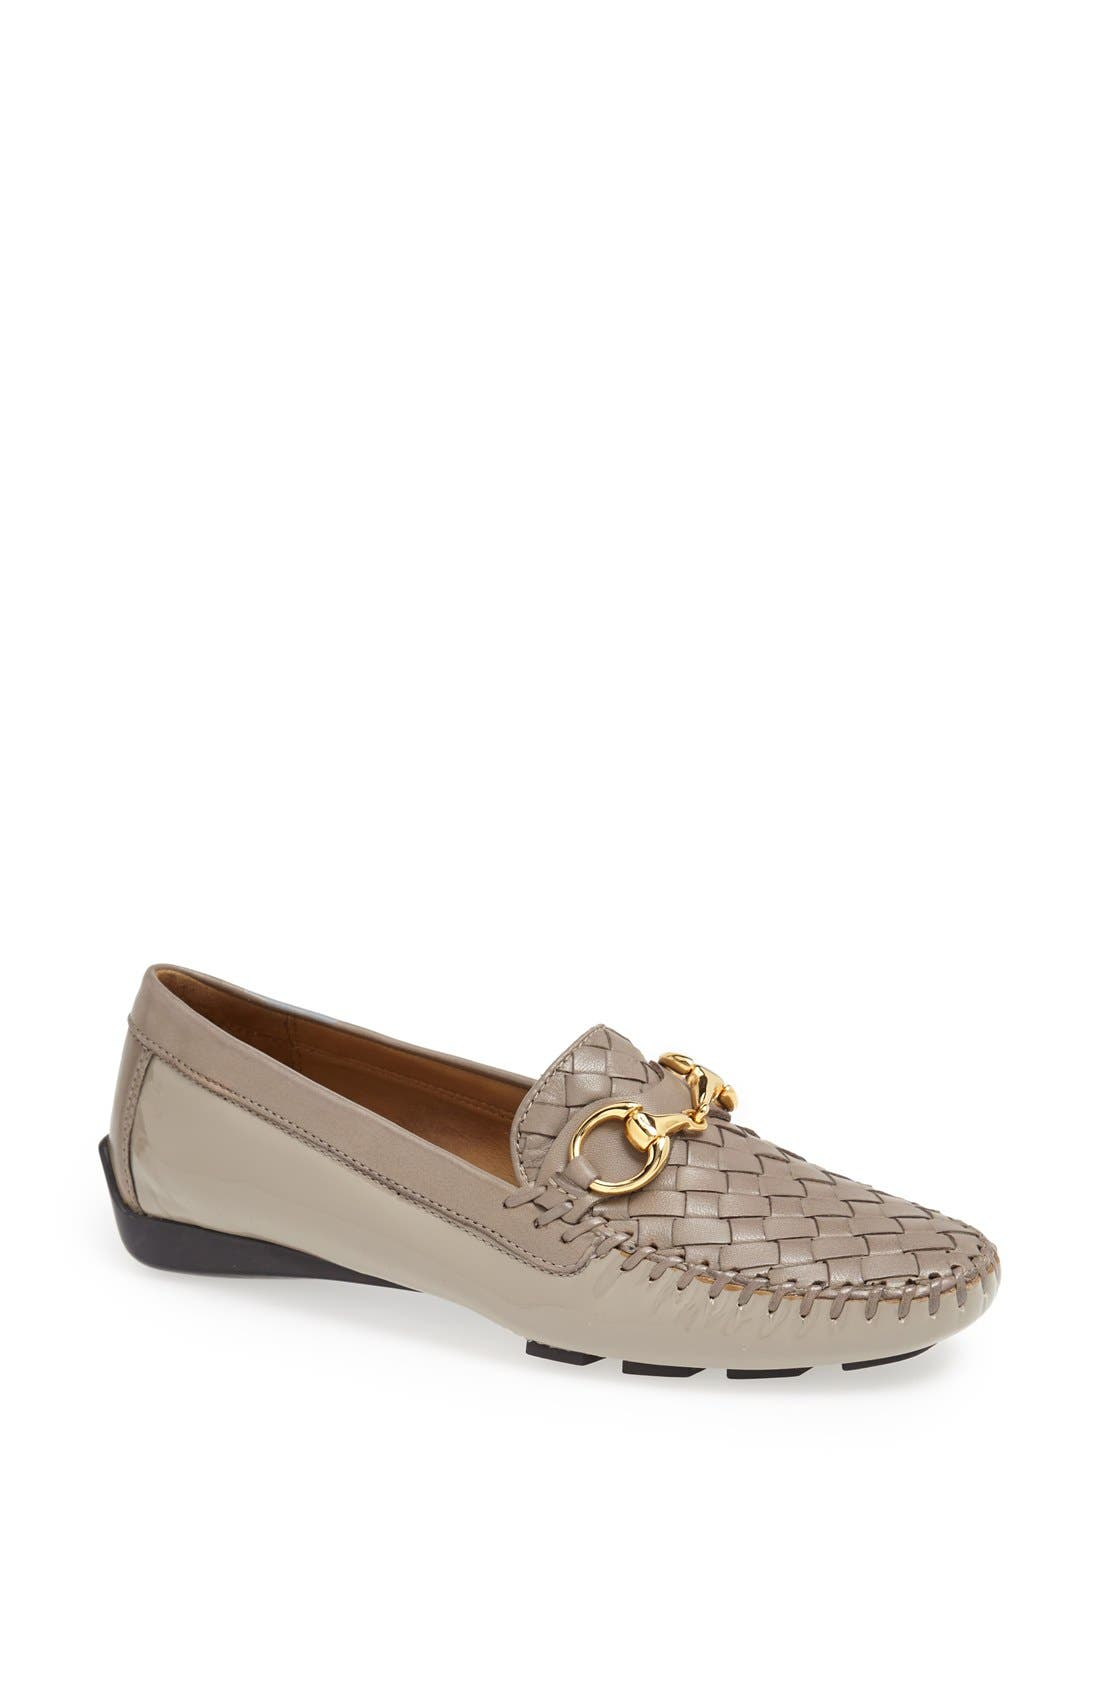 'Perlata' Loafer,                         Main,                         color, Taupe Patent